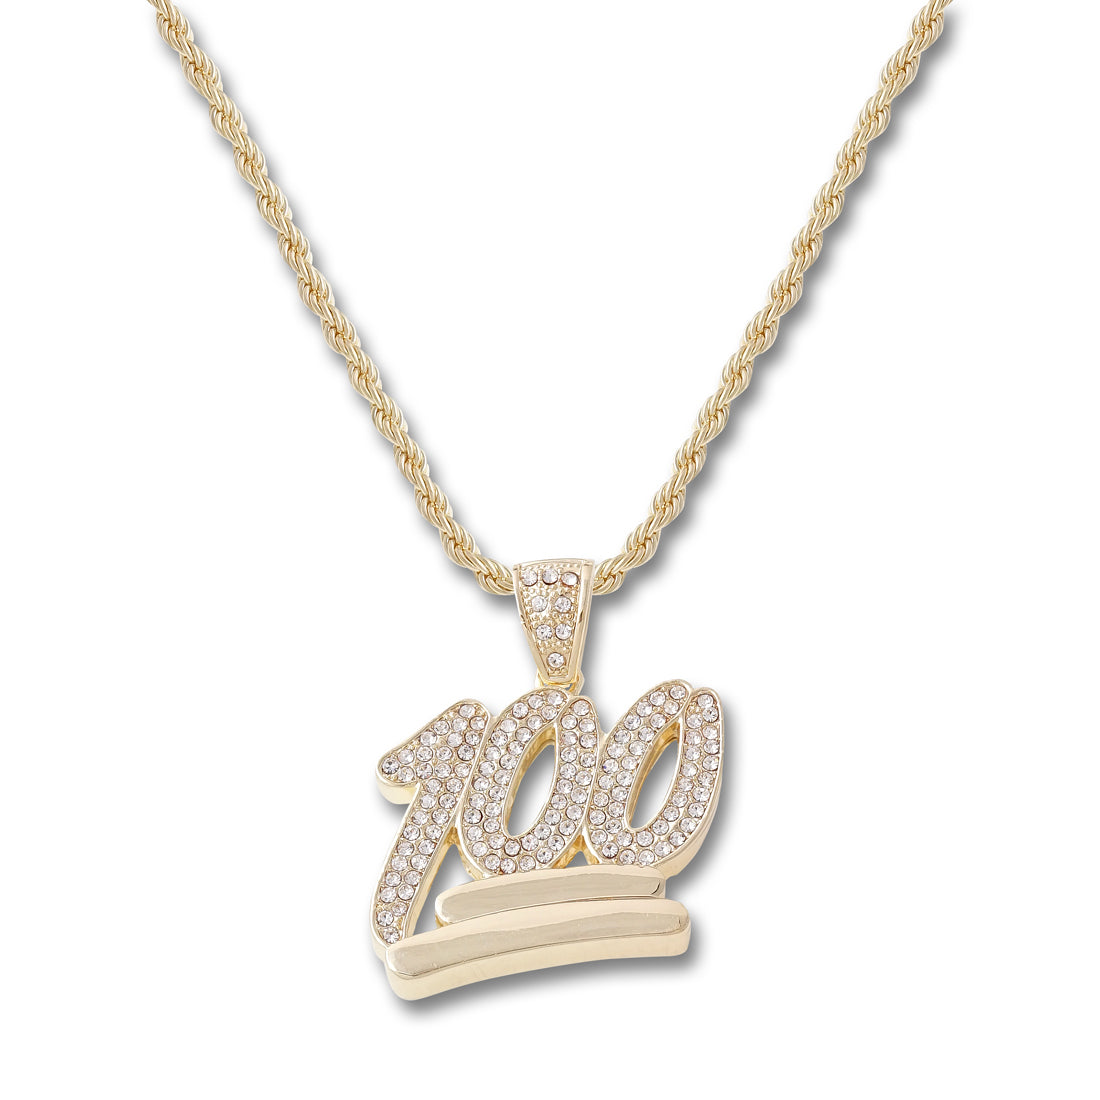 GOLD 100 Pendant Necklace - URBANCREWS